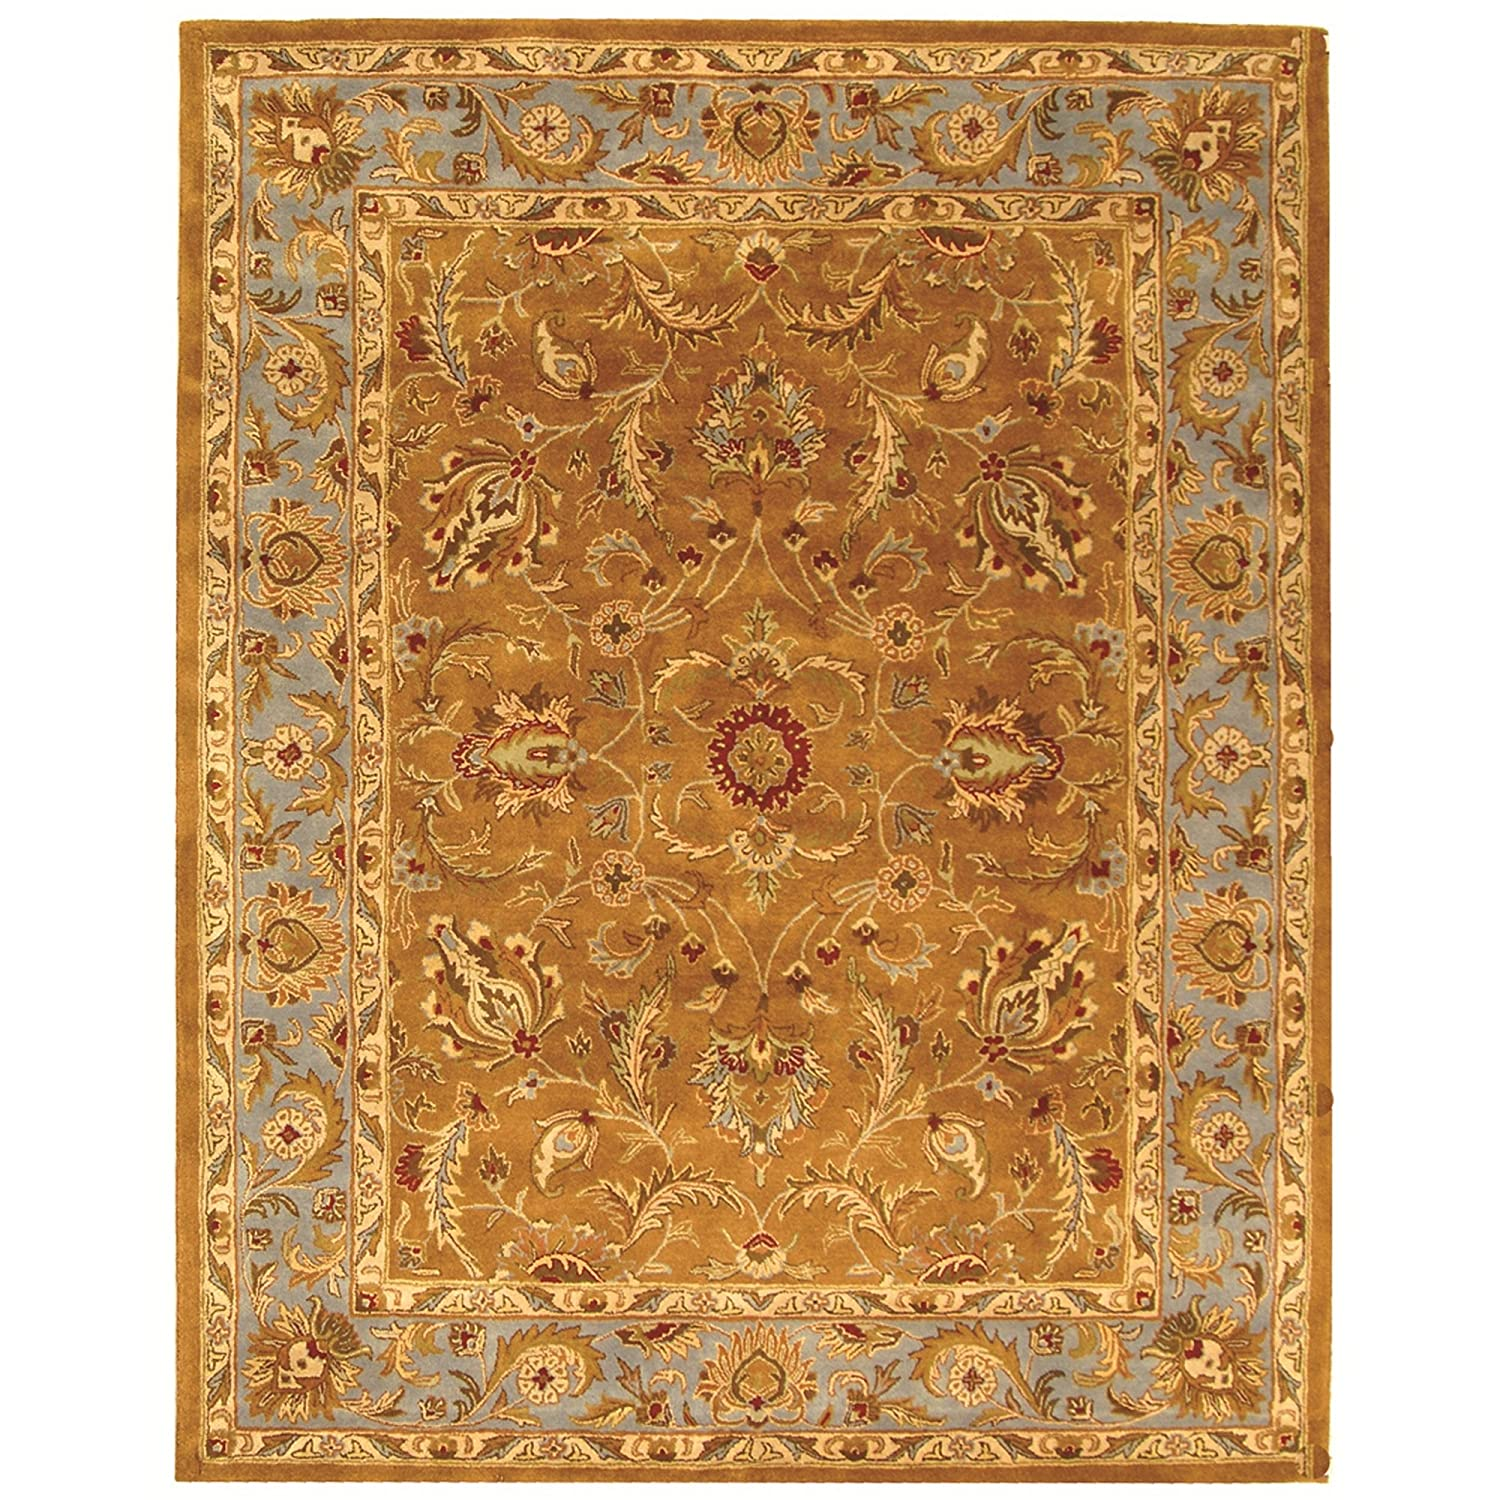 Amazon Com Safavieh Heritage Collection Hg812a Handcrafted